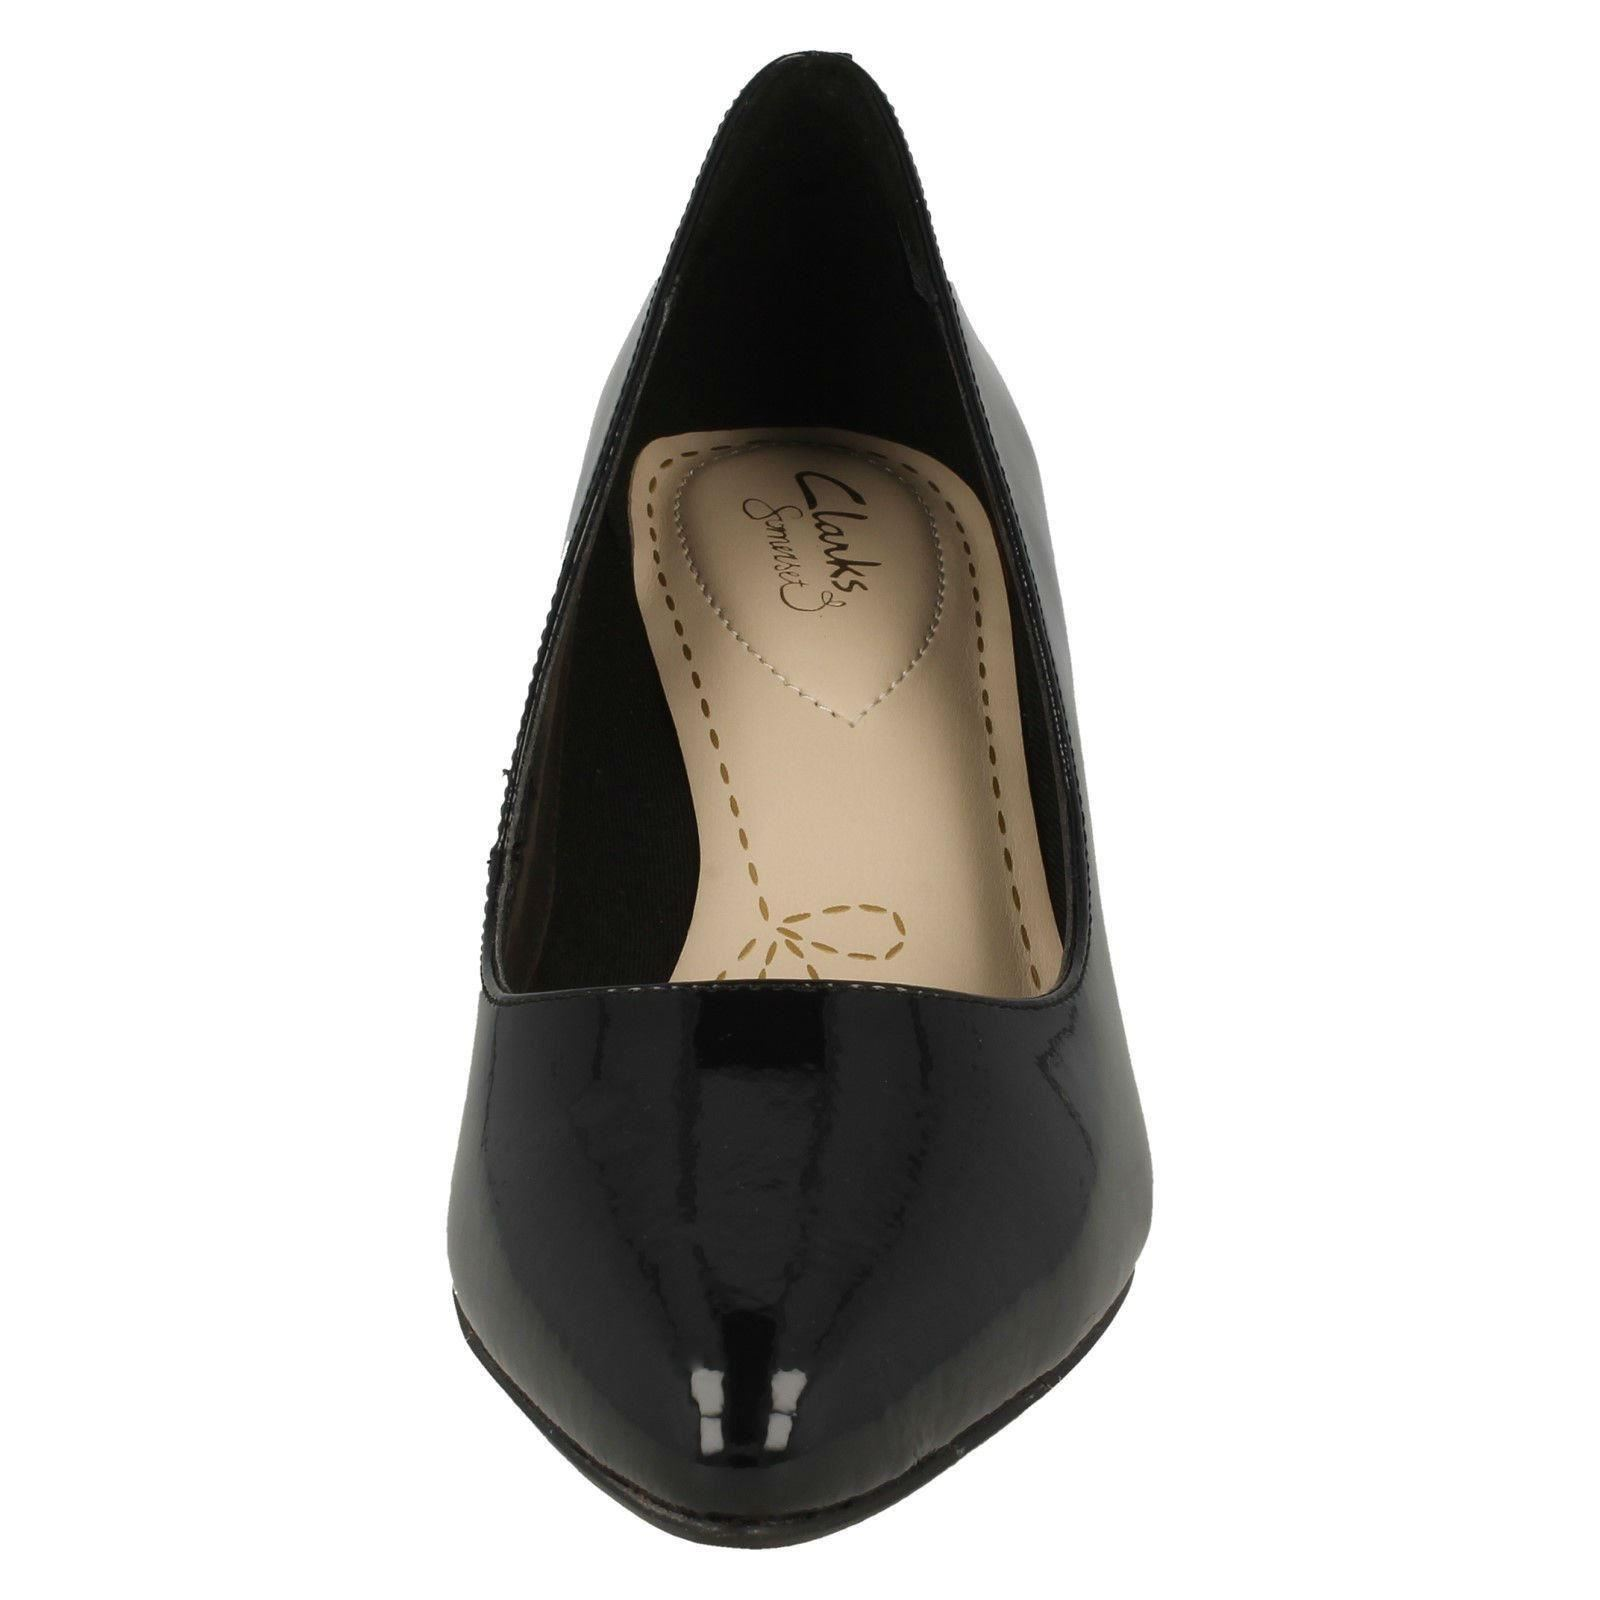 Clarks /'Isidora Faye/' Ladies Leather Upper Smart Casual Standard Fit Court Shoes